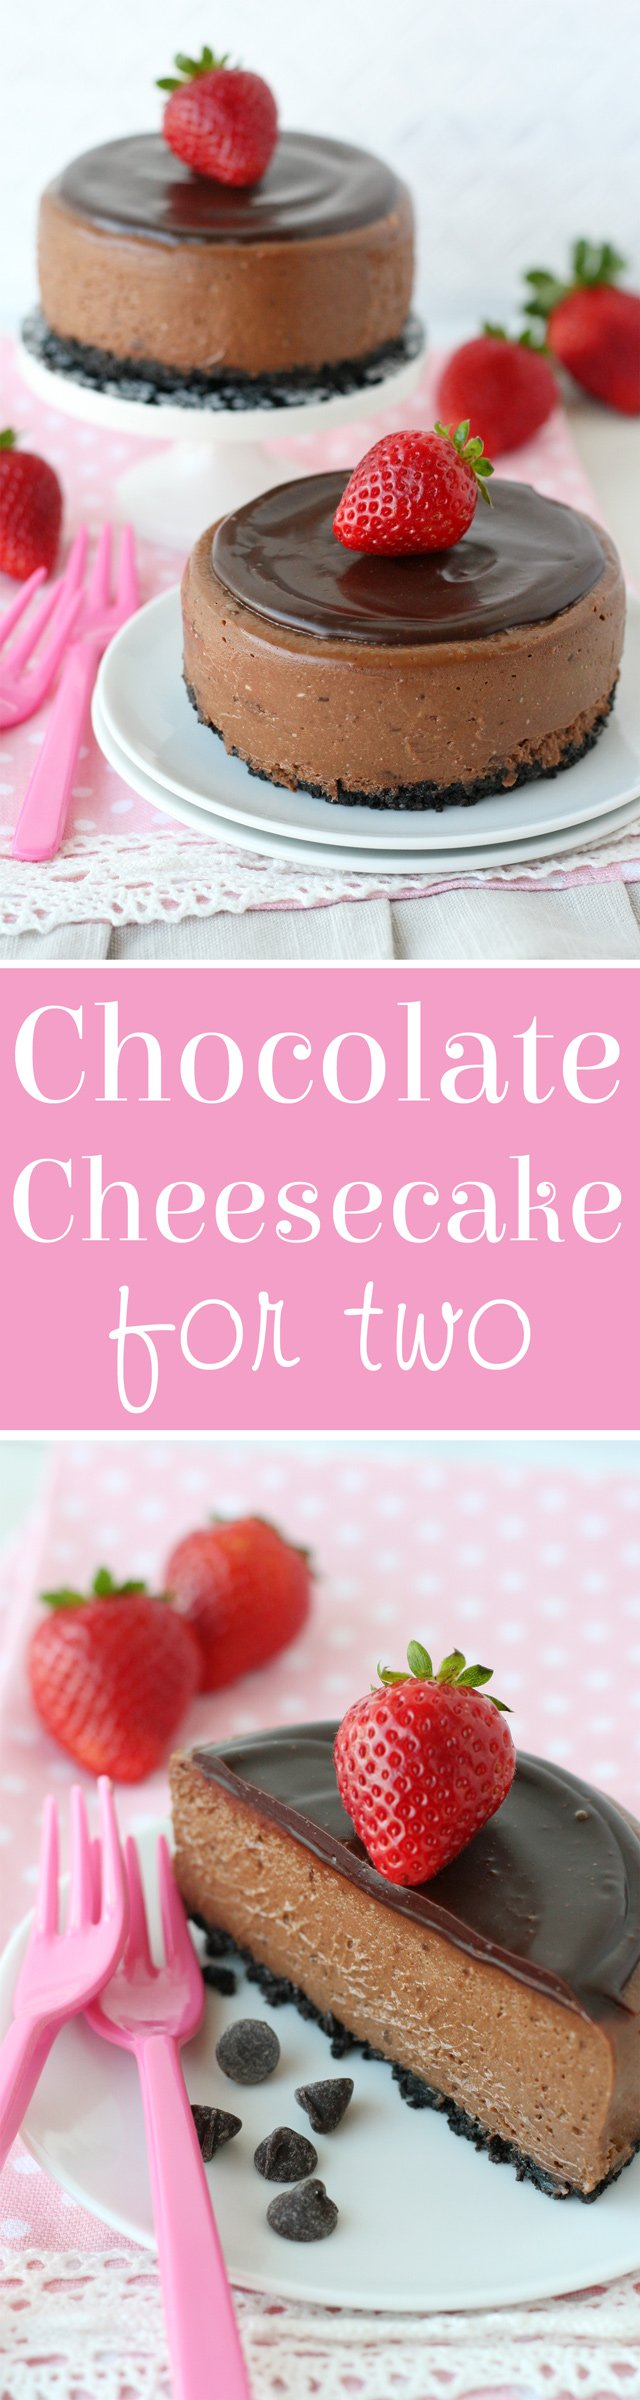 So rich and creamy! CHOCOLATE CHEESECAKE for two!